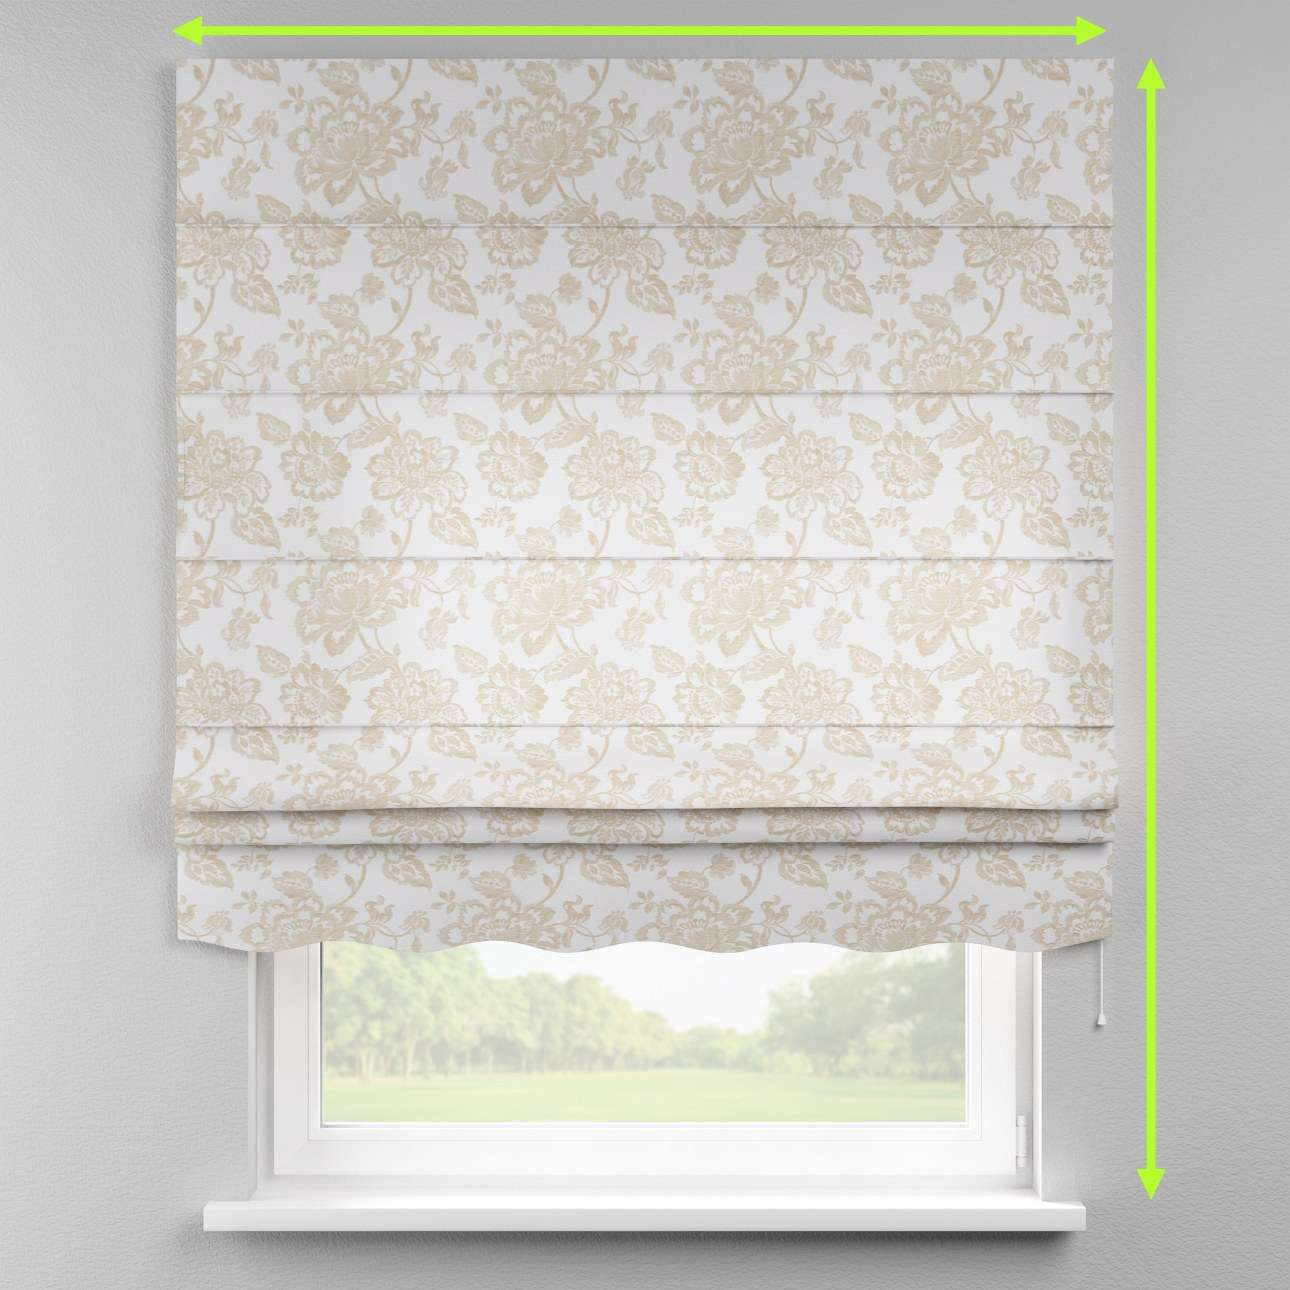 Florence roman blind  in collection Rustica, fabric: 138-23